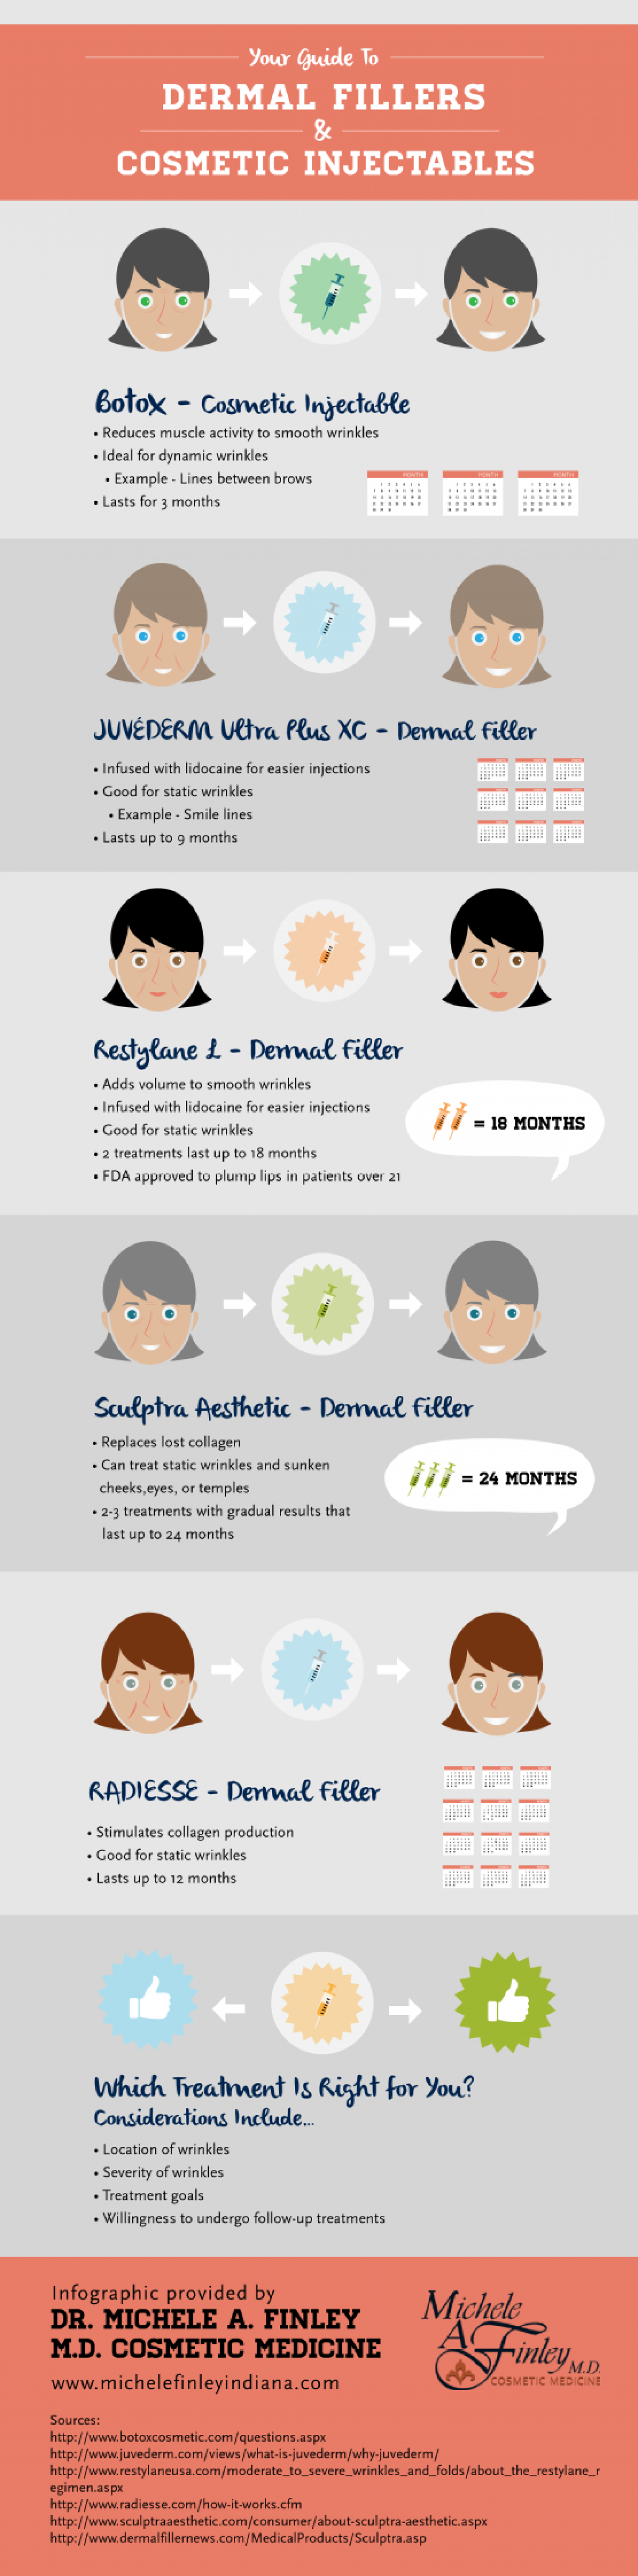 Your Guide to Dermal Fillers and Cosmetic Injectables Infographic